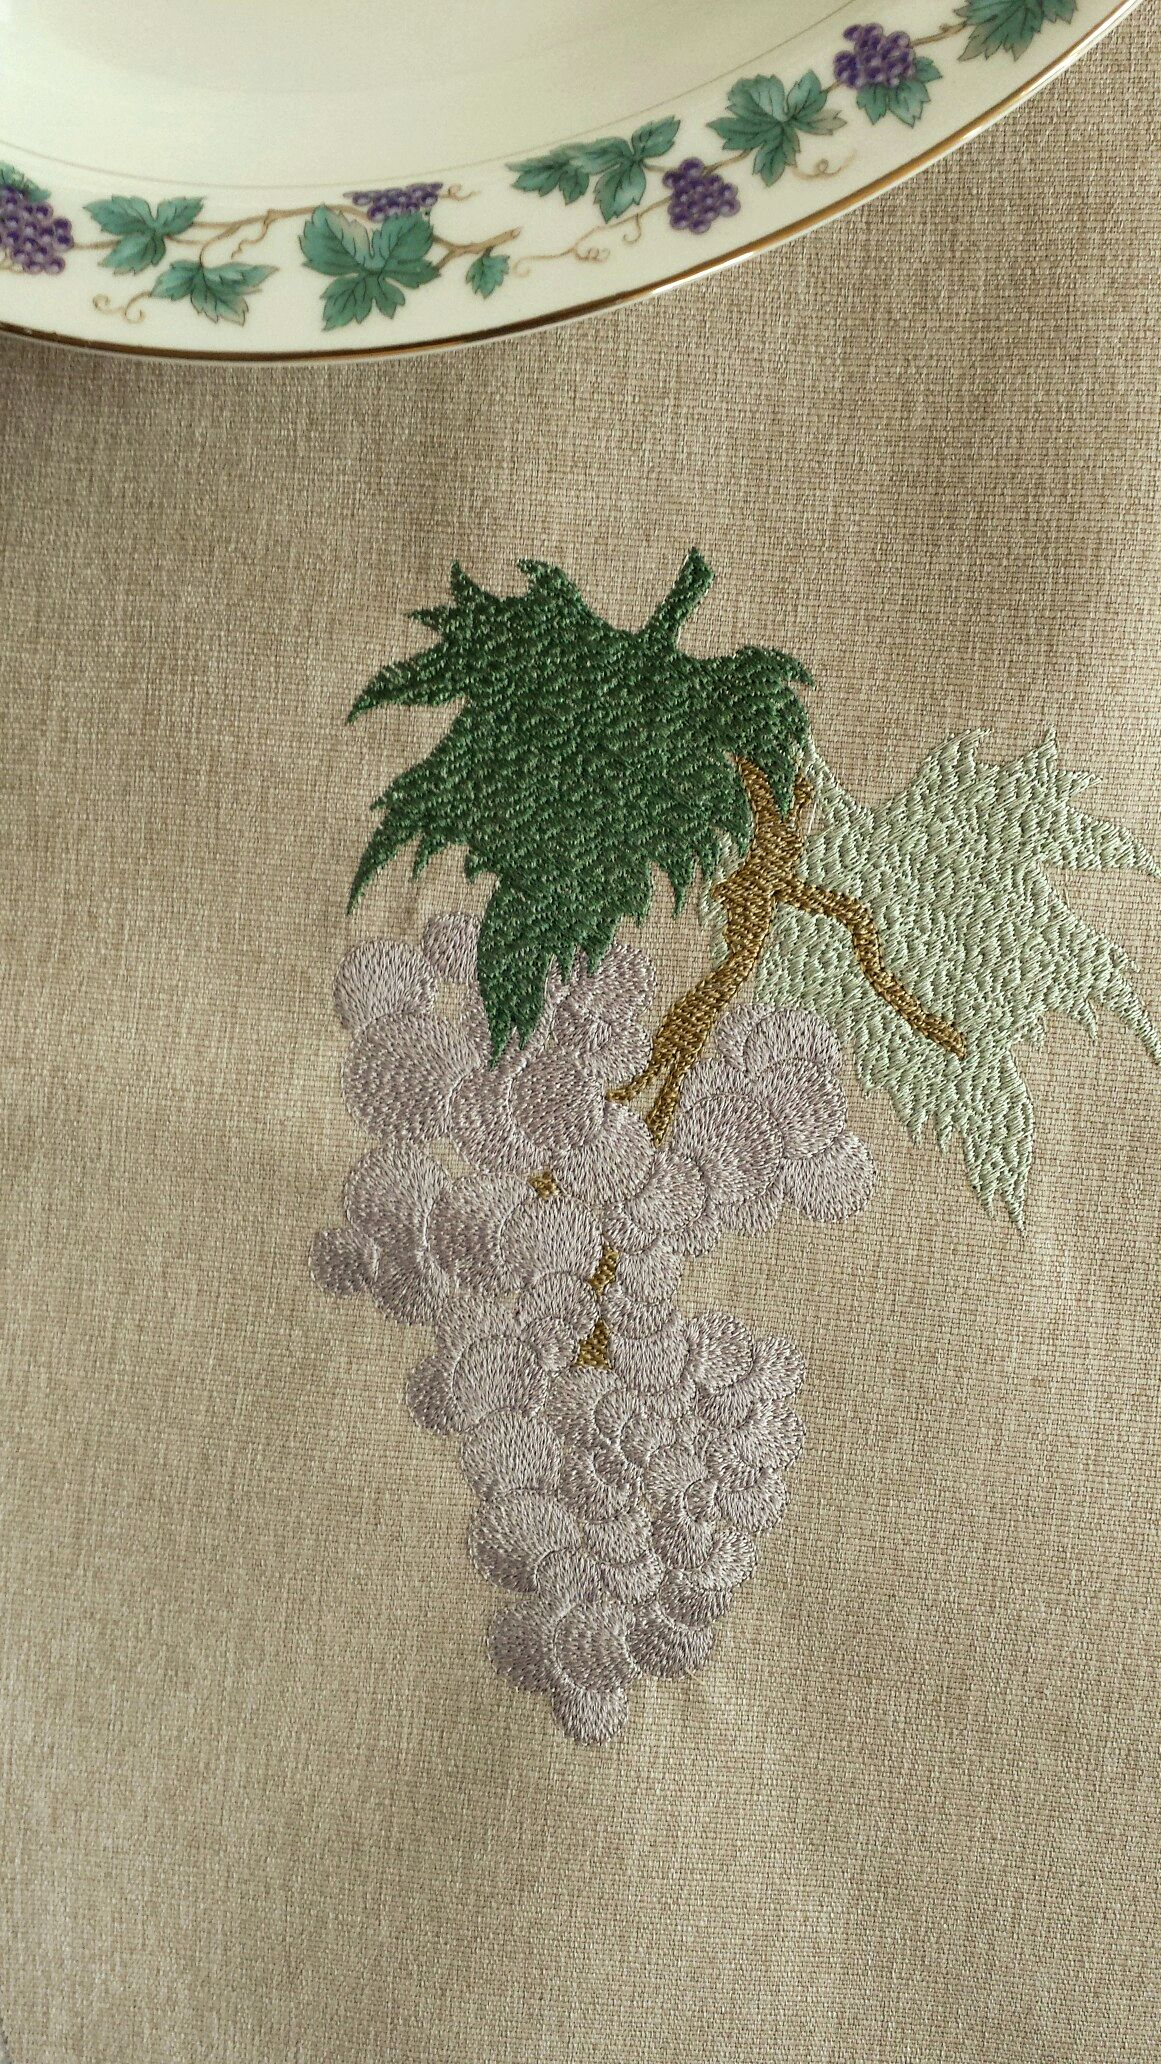 grape-filled-embroidery